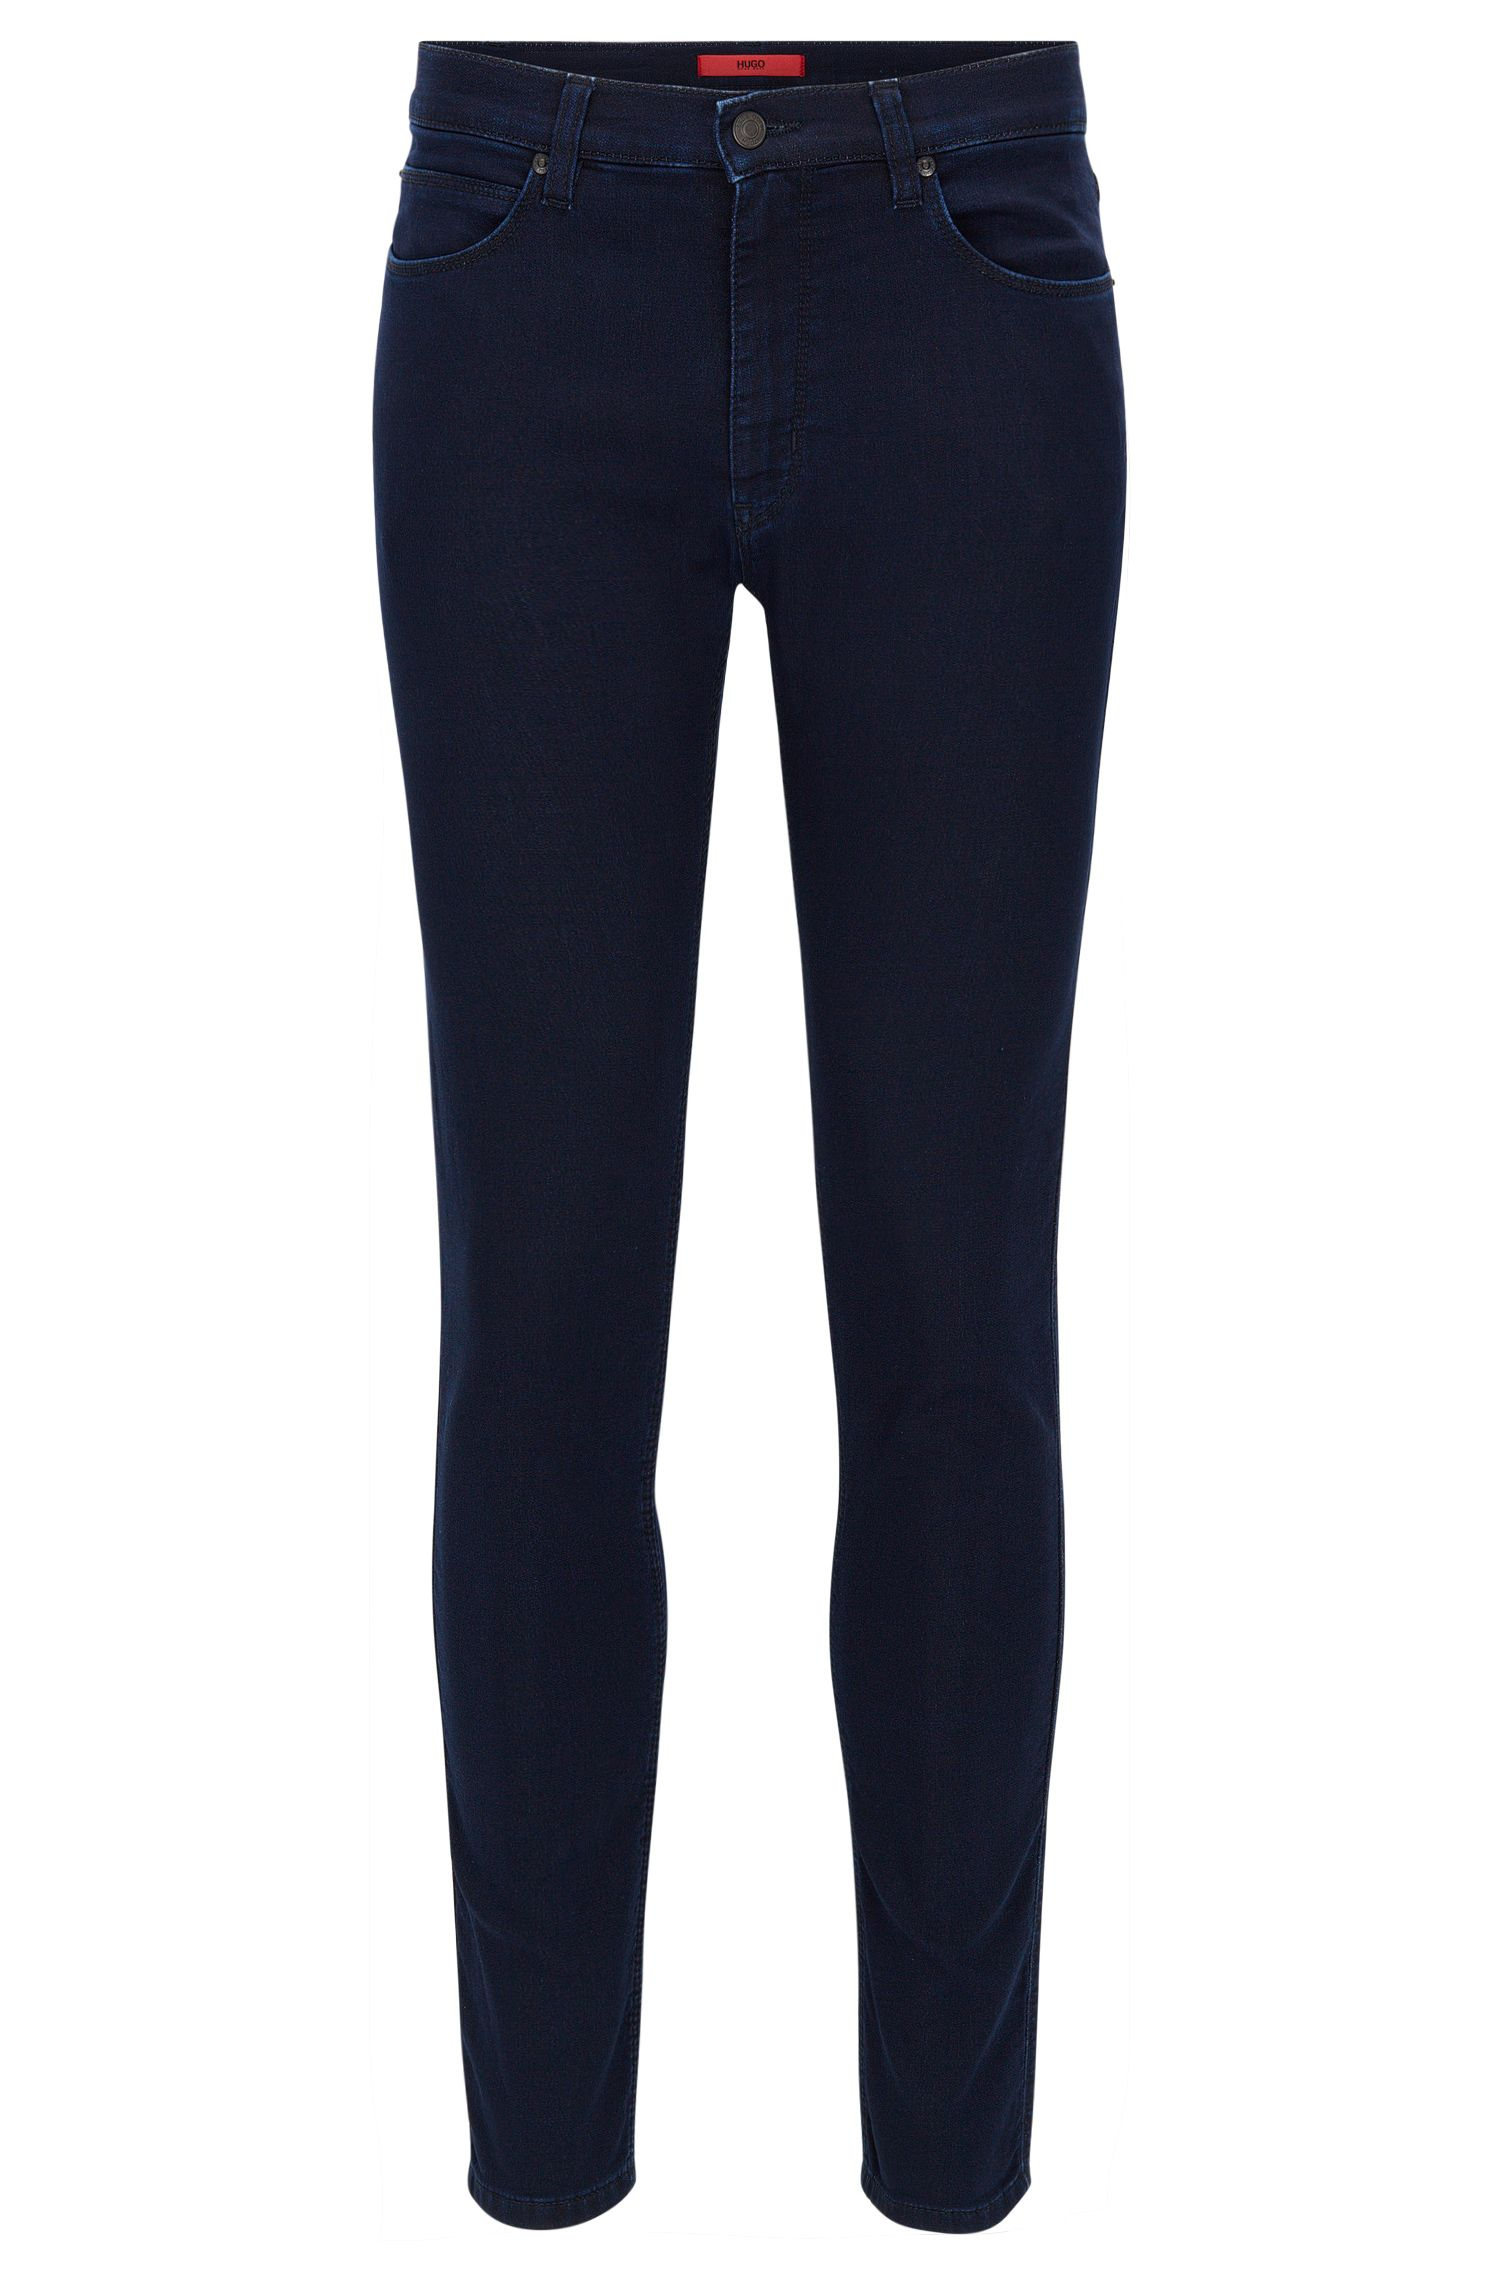 Skinny-fit jeans in indigo jersey denim